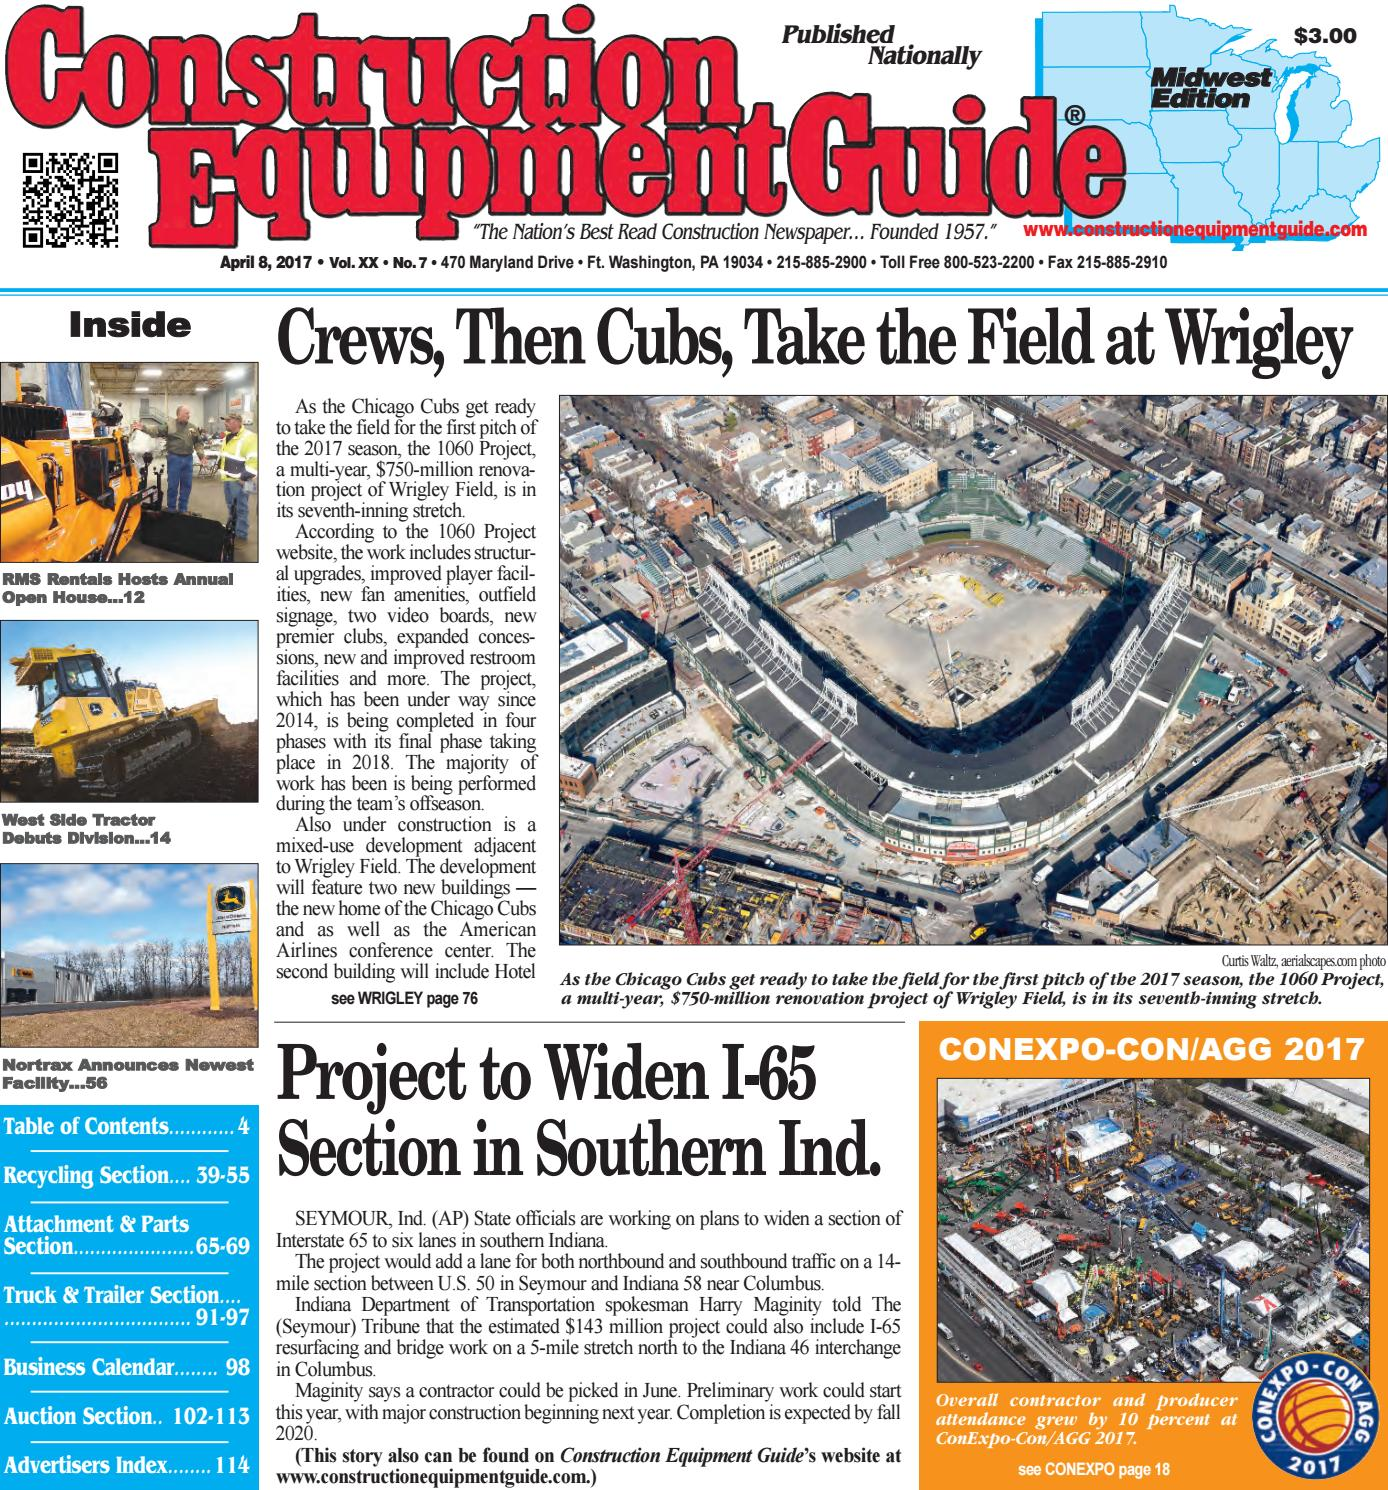 Midwest 7 April 10, 2017 by Construction Equipment Guide - issuu on